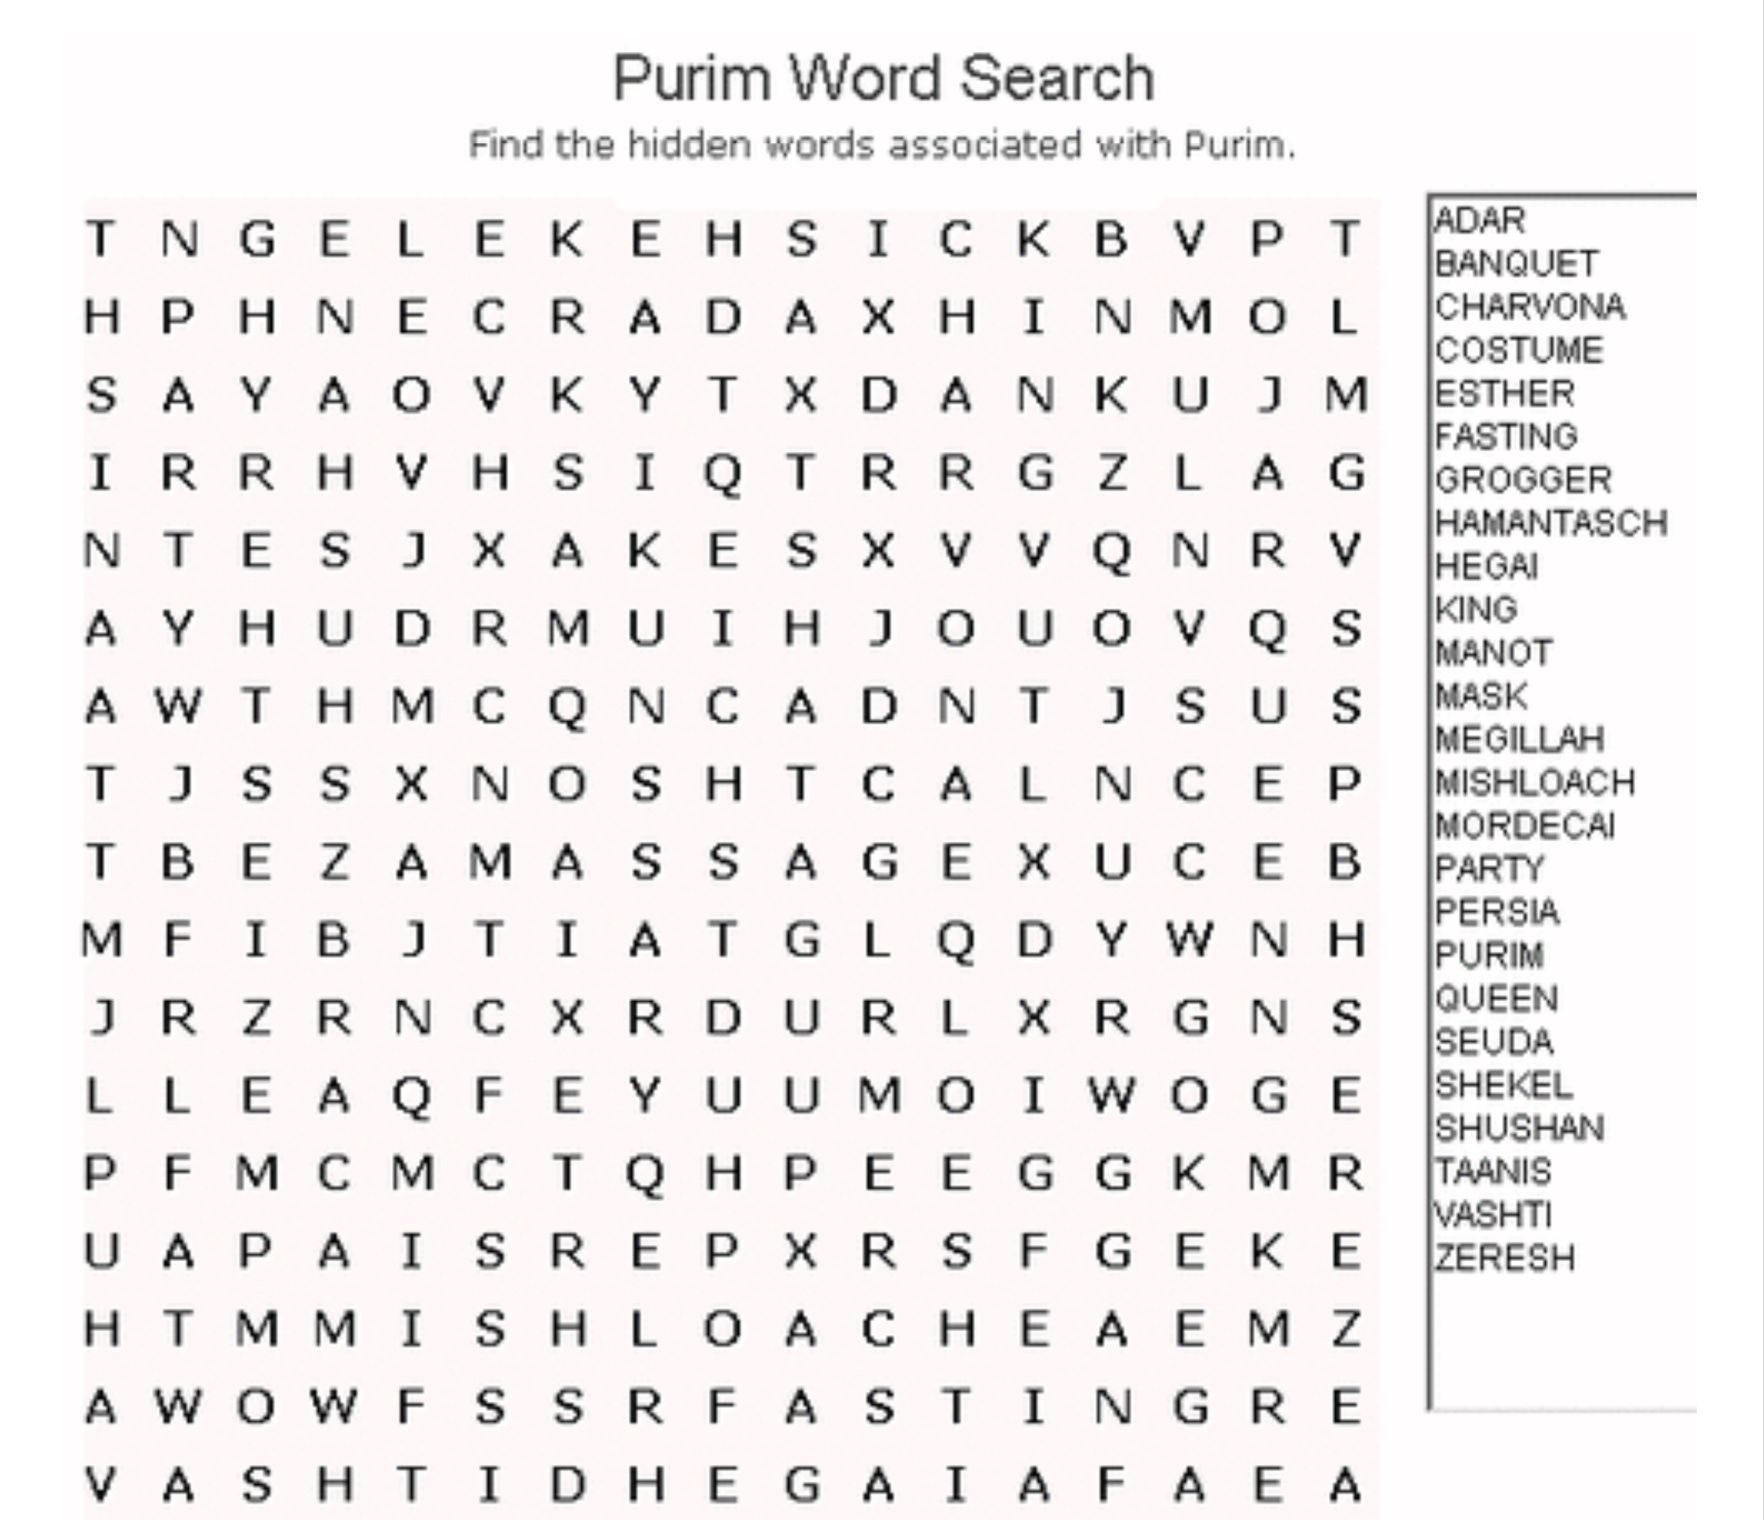 Purim Word Search | Kitah Dalet | Word Search Puzzles, Free Word - General Knowledge Crossword Puzzles Printable